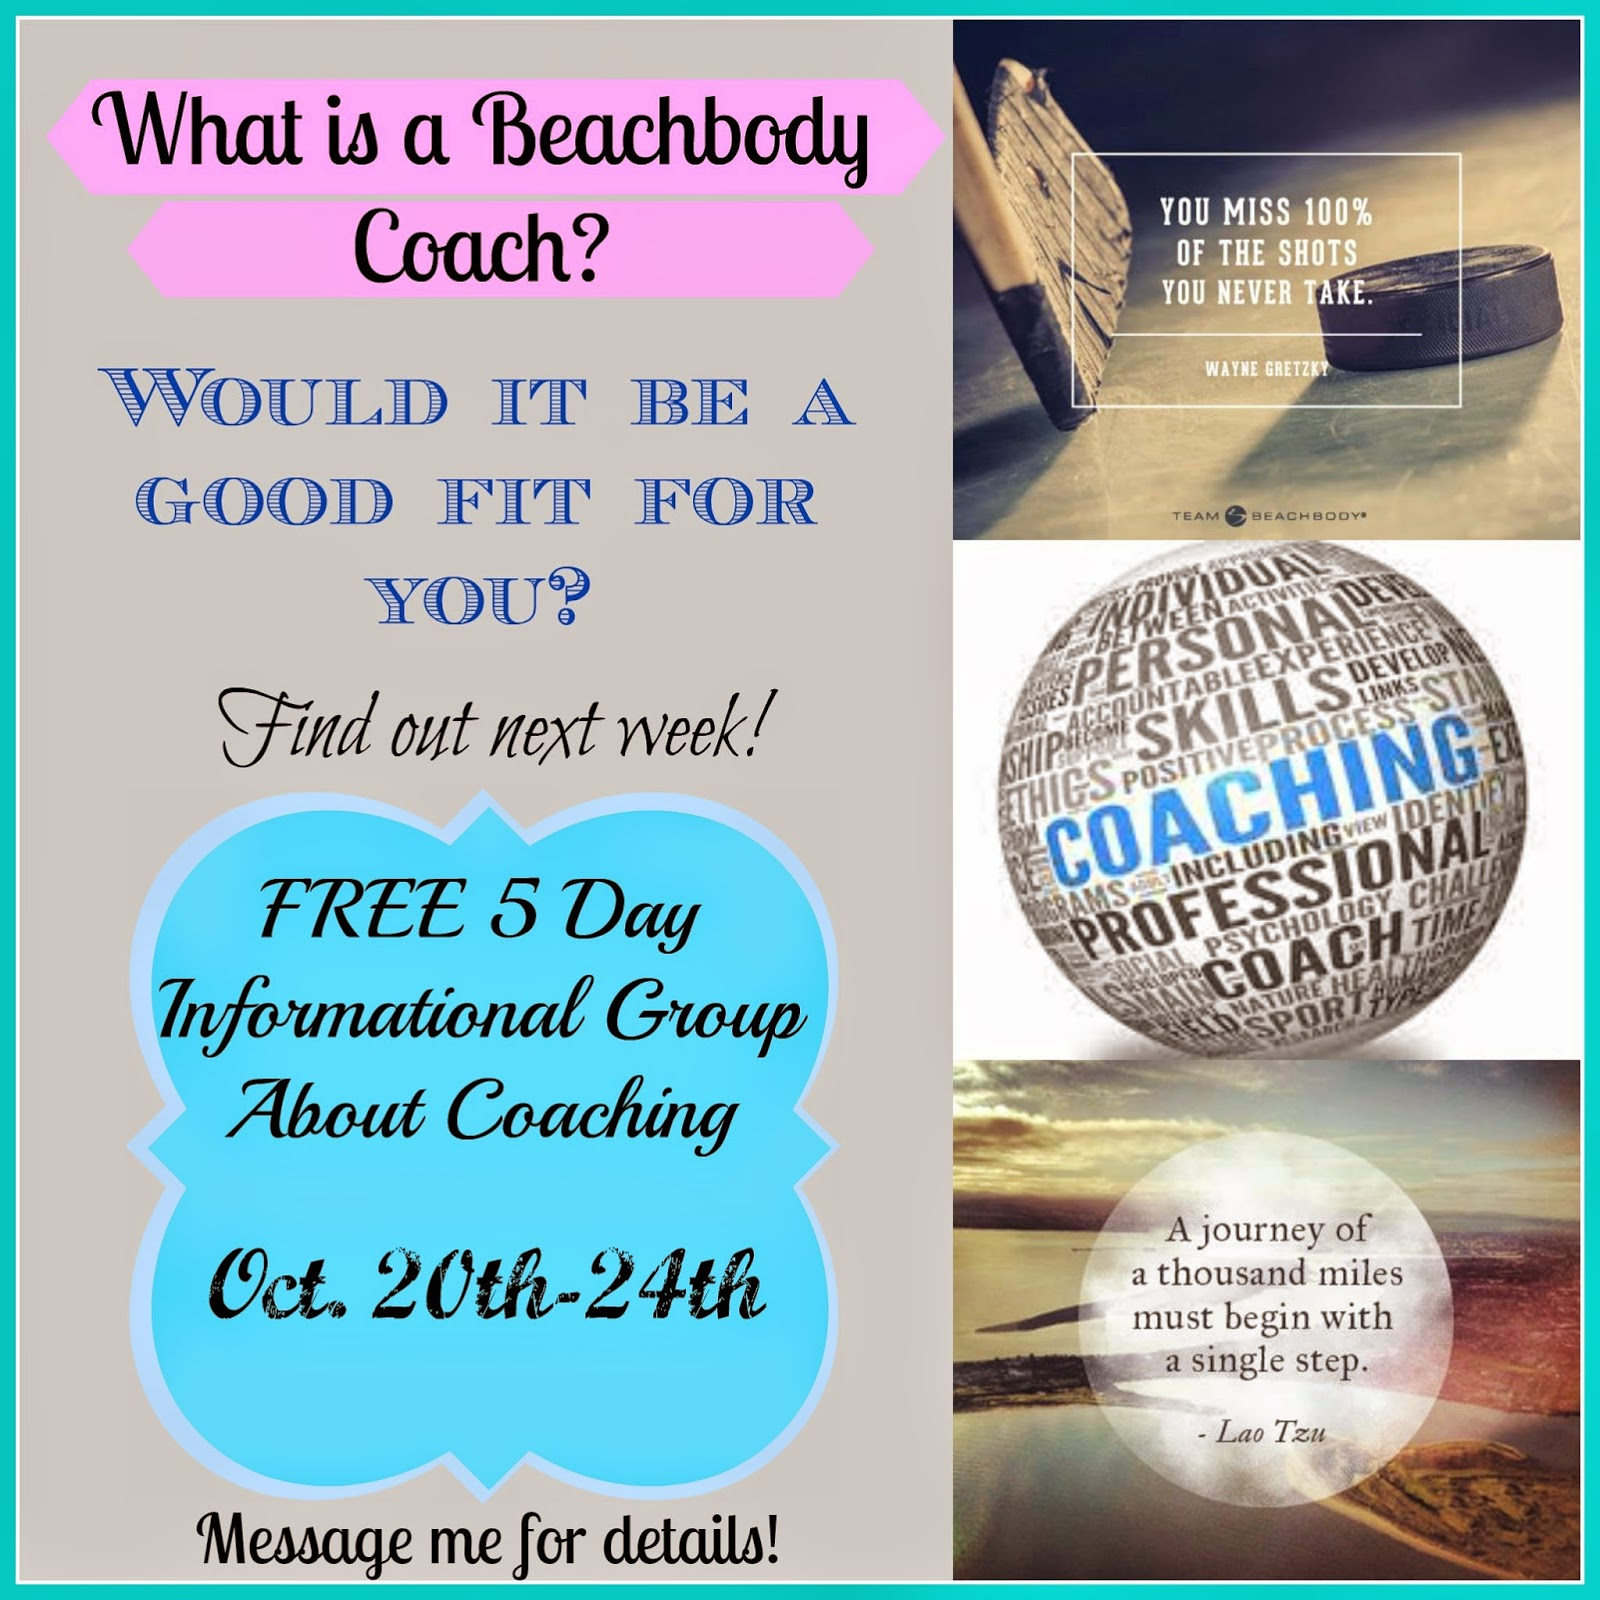 Becoming a Beachbody Coach, Beachbody Coaching, Extra Income, Work from Home, Beachbody Coach Training